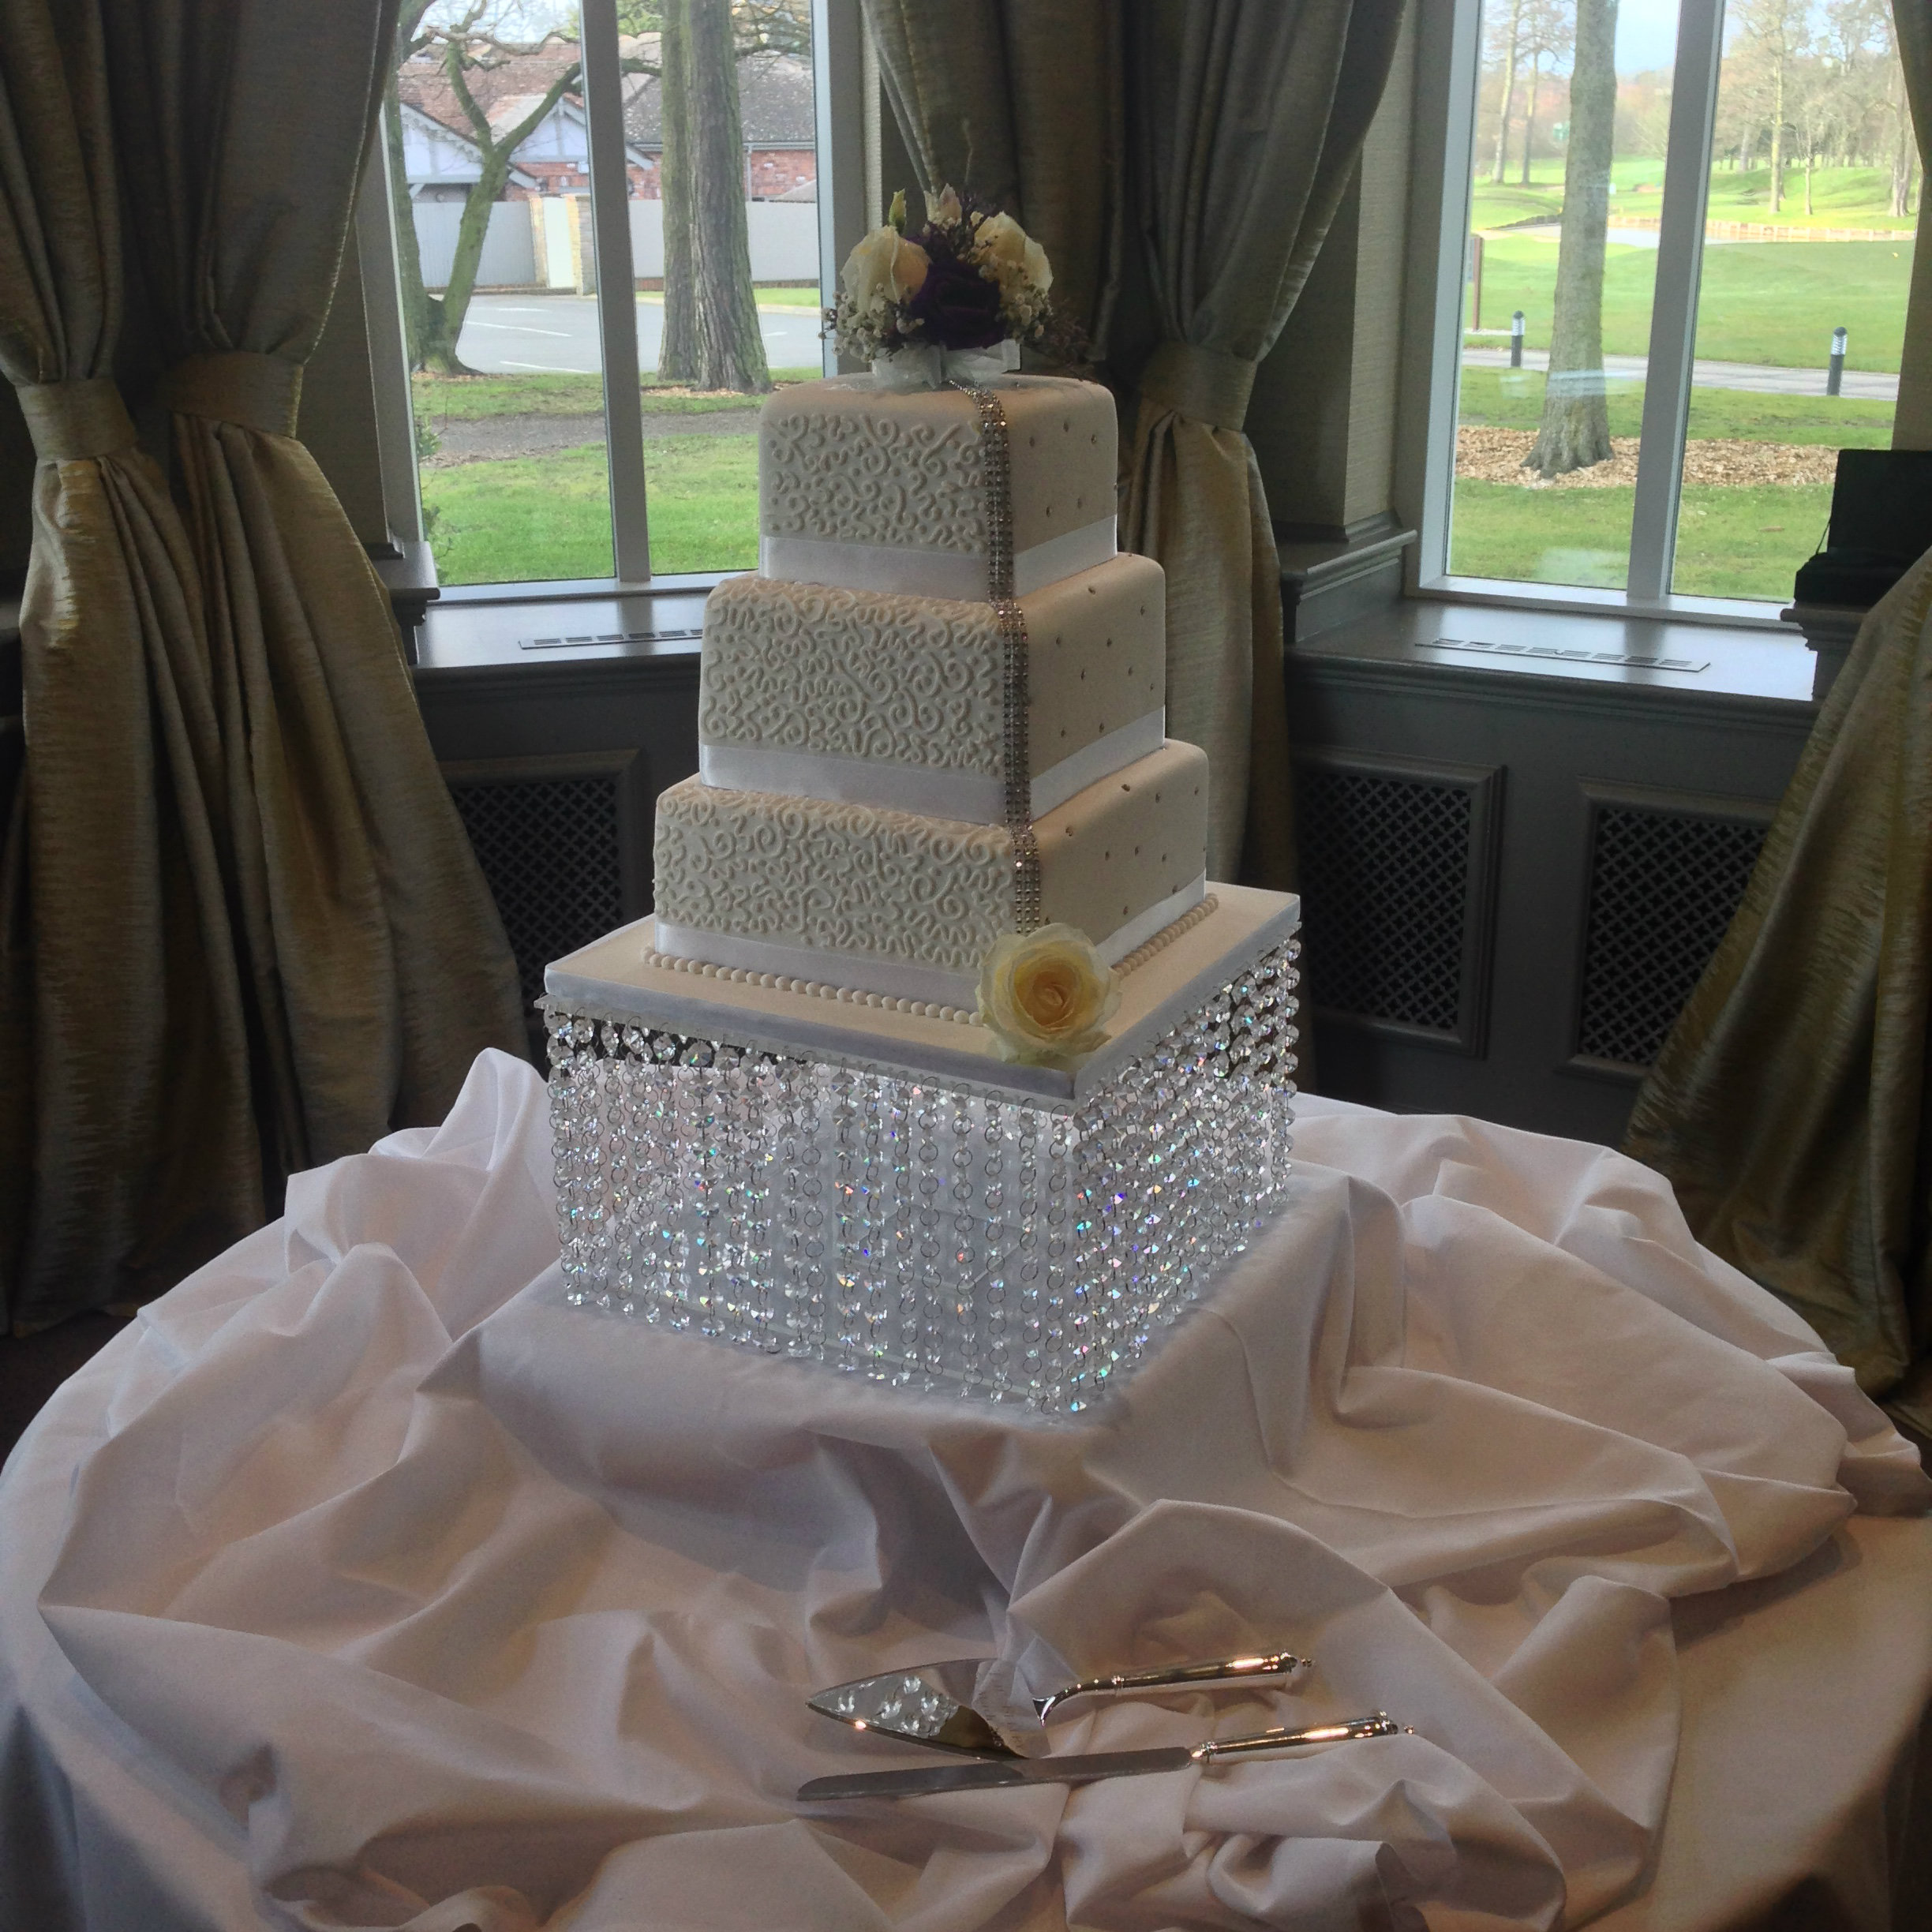 daimante crystal wedding cake